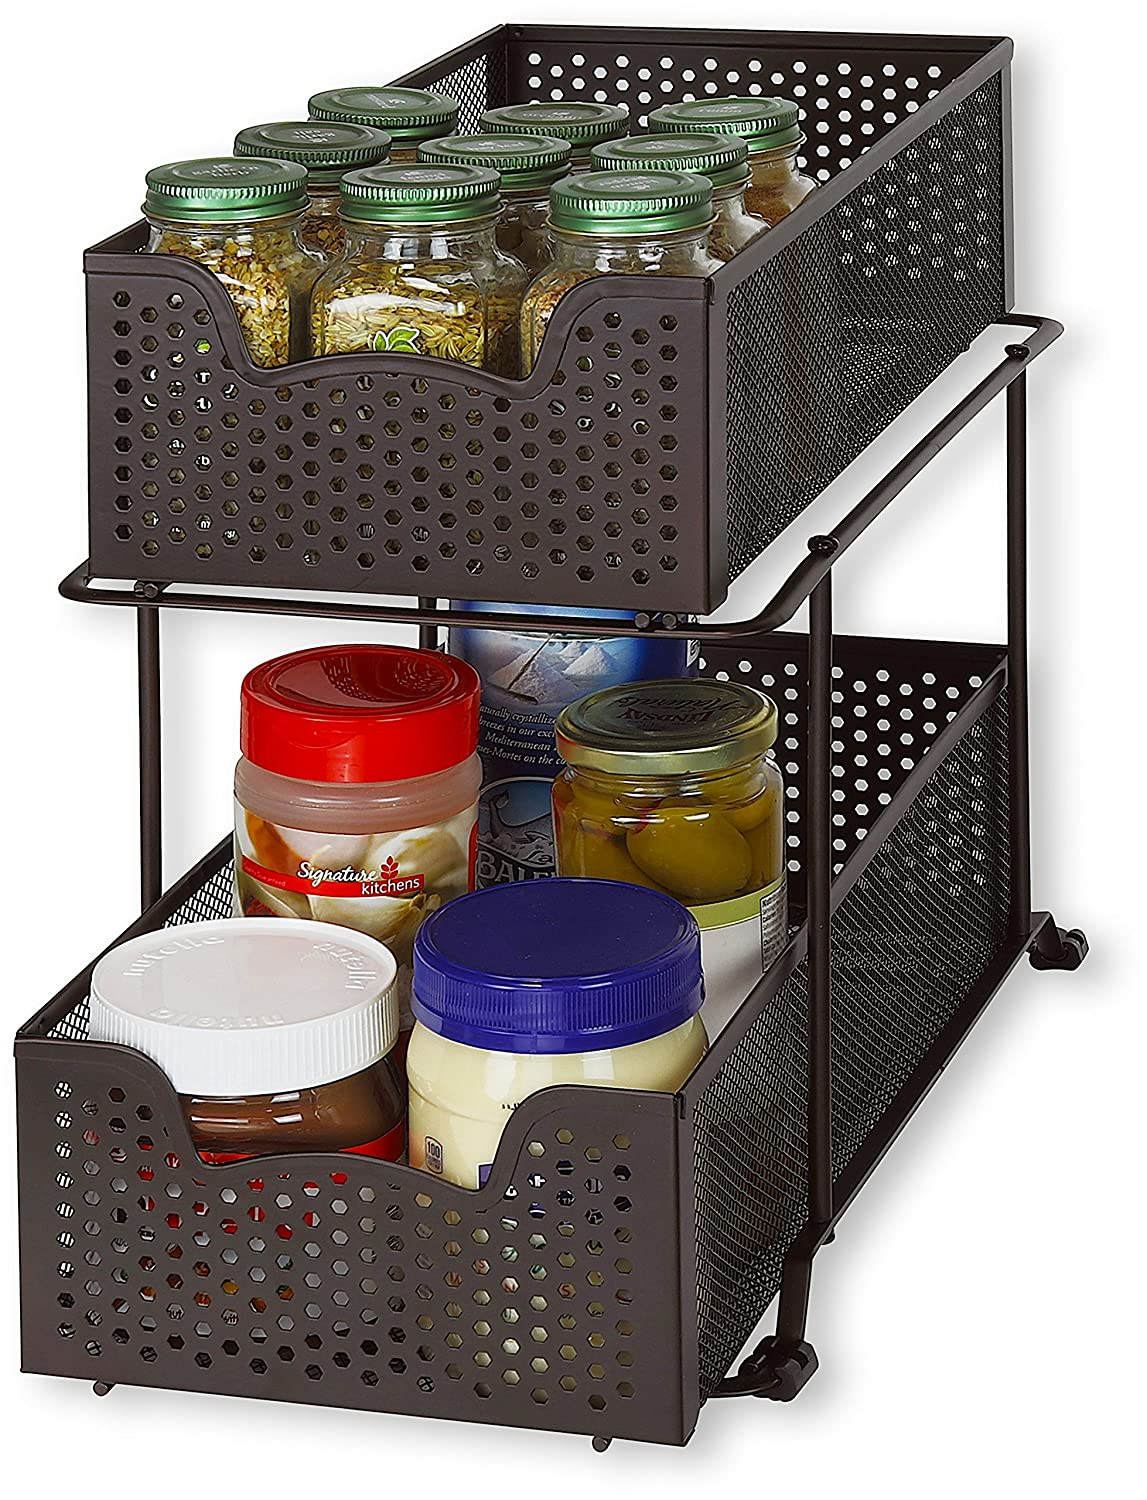 SimpleHouseware 2 Tier Sliding Cabinet Basket Organizer Drawer, Bronze Simple Houseware CB-006-2